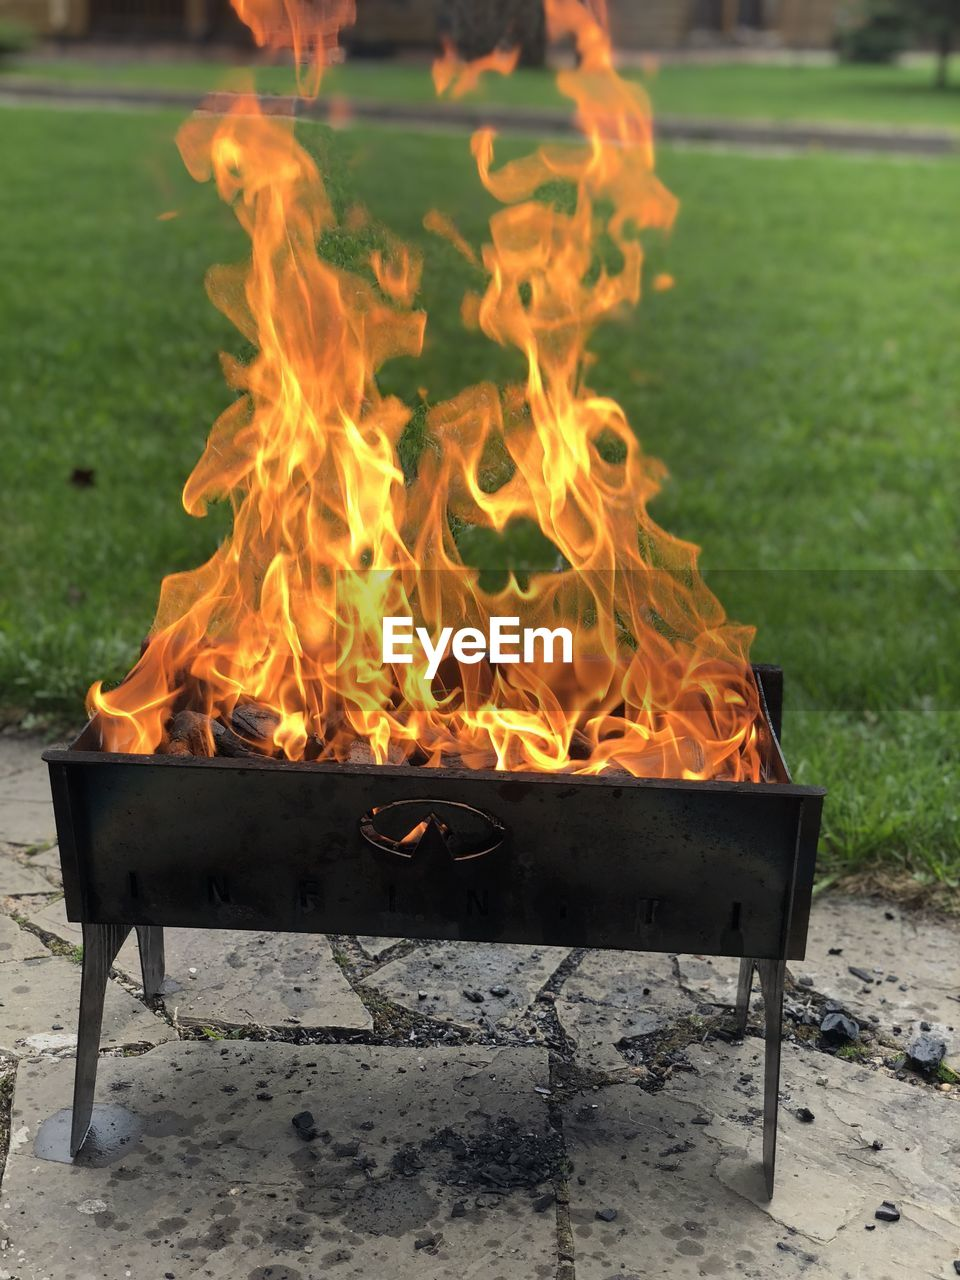 heat - temperature, fire, burning, flame, fire - natural phenomenon, nature, orange color, no people, outdoors, glowing, motion, environment, focus on foreground, wood, barbecue, wood - material, land, fire pit, front or back yard, day